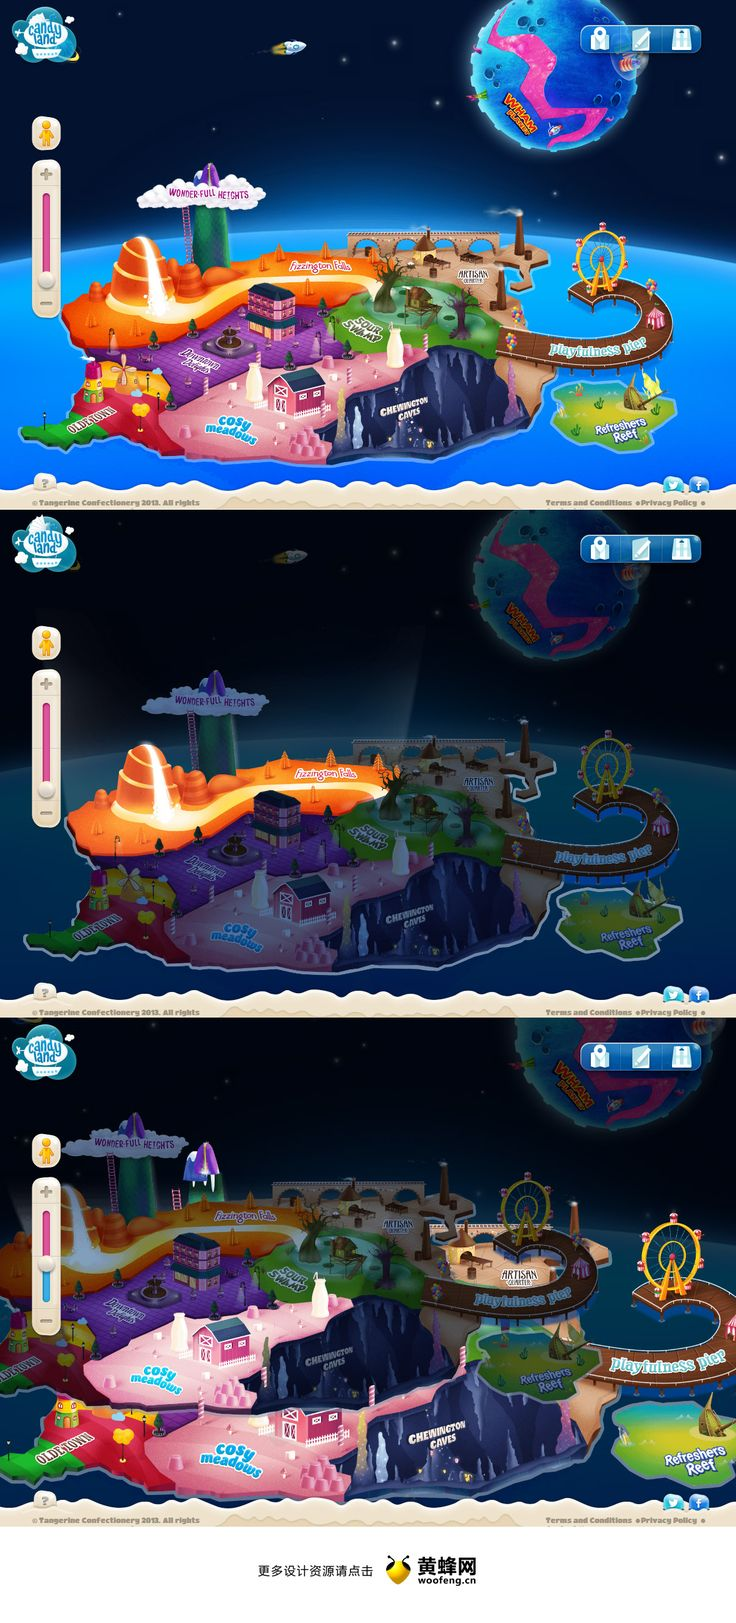 Candy land,来源自黄蜂网http://woofeng.cn/